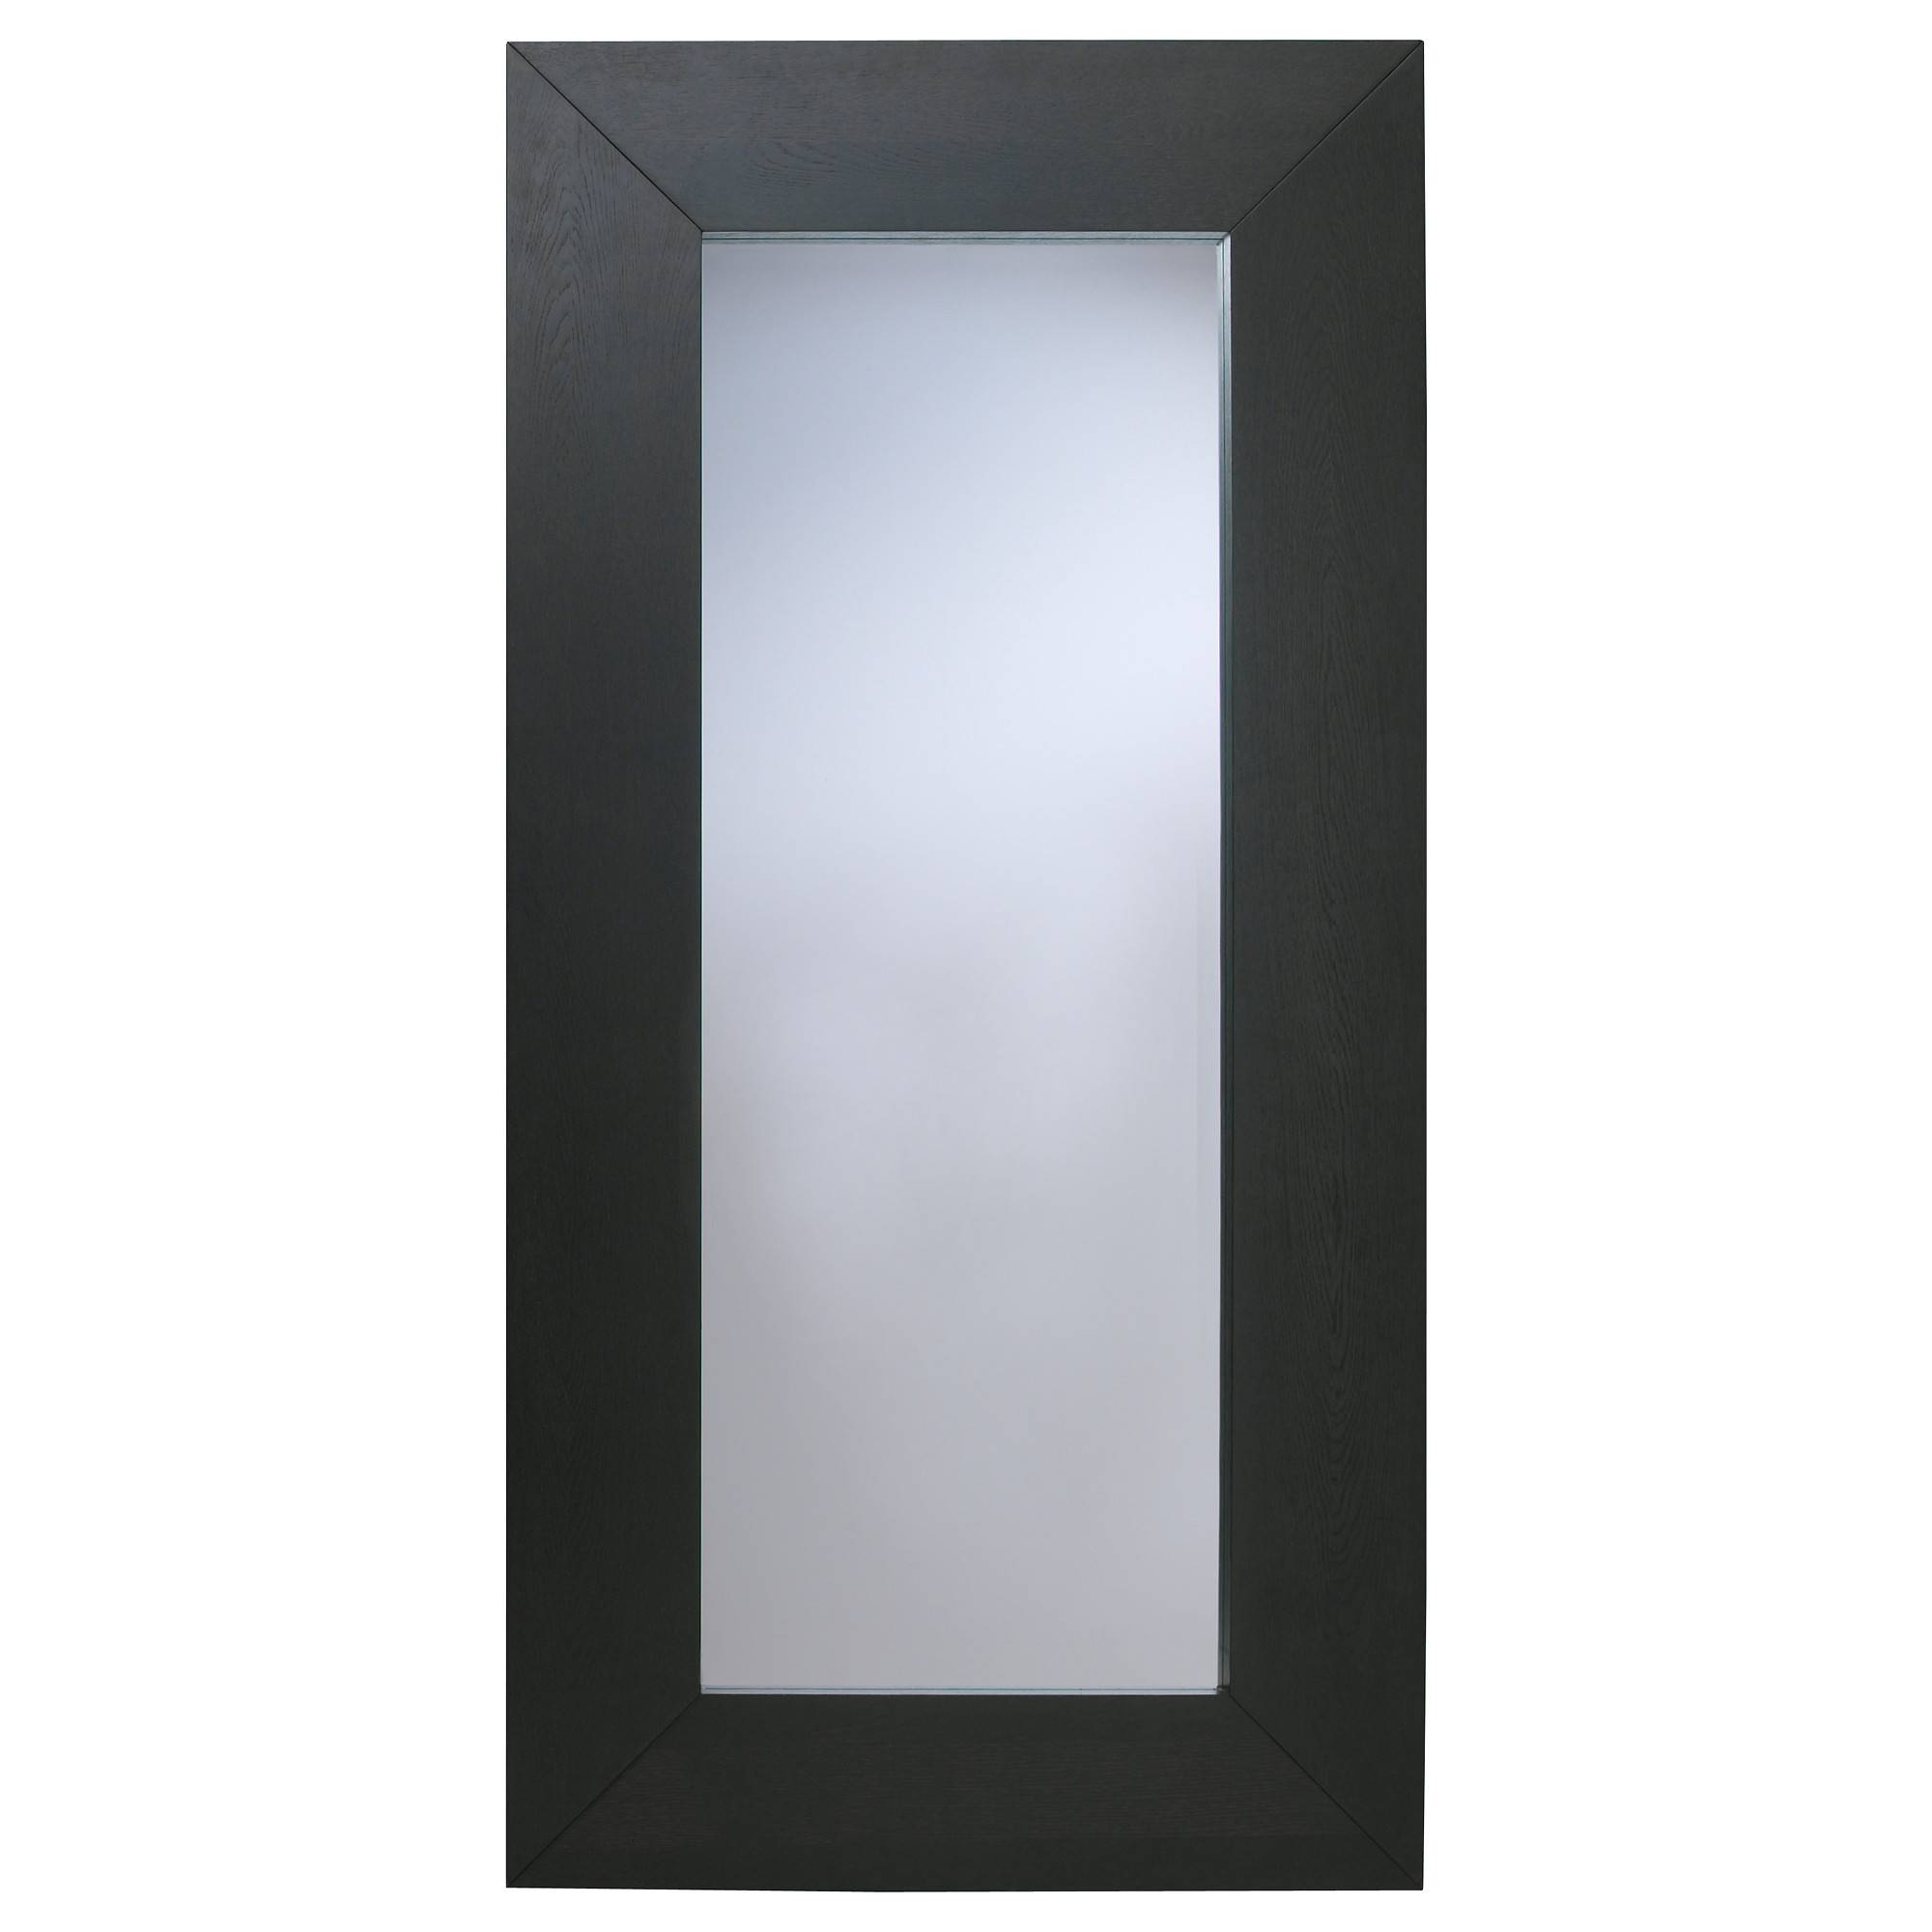 Wall Mirrors - Ikea regarding Large Bronze Mirrors (Image 15 of 15)